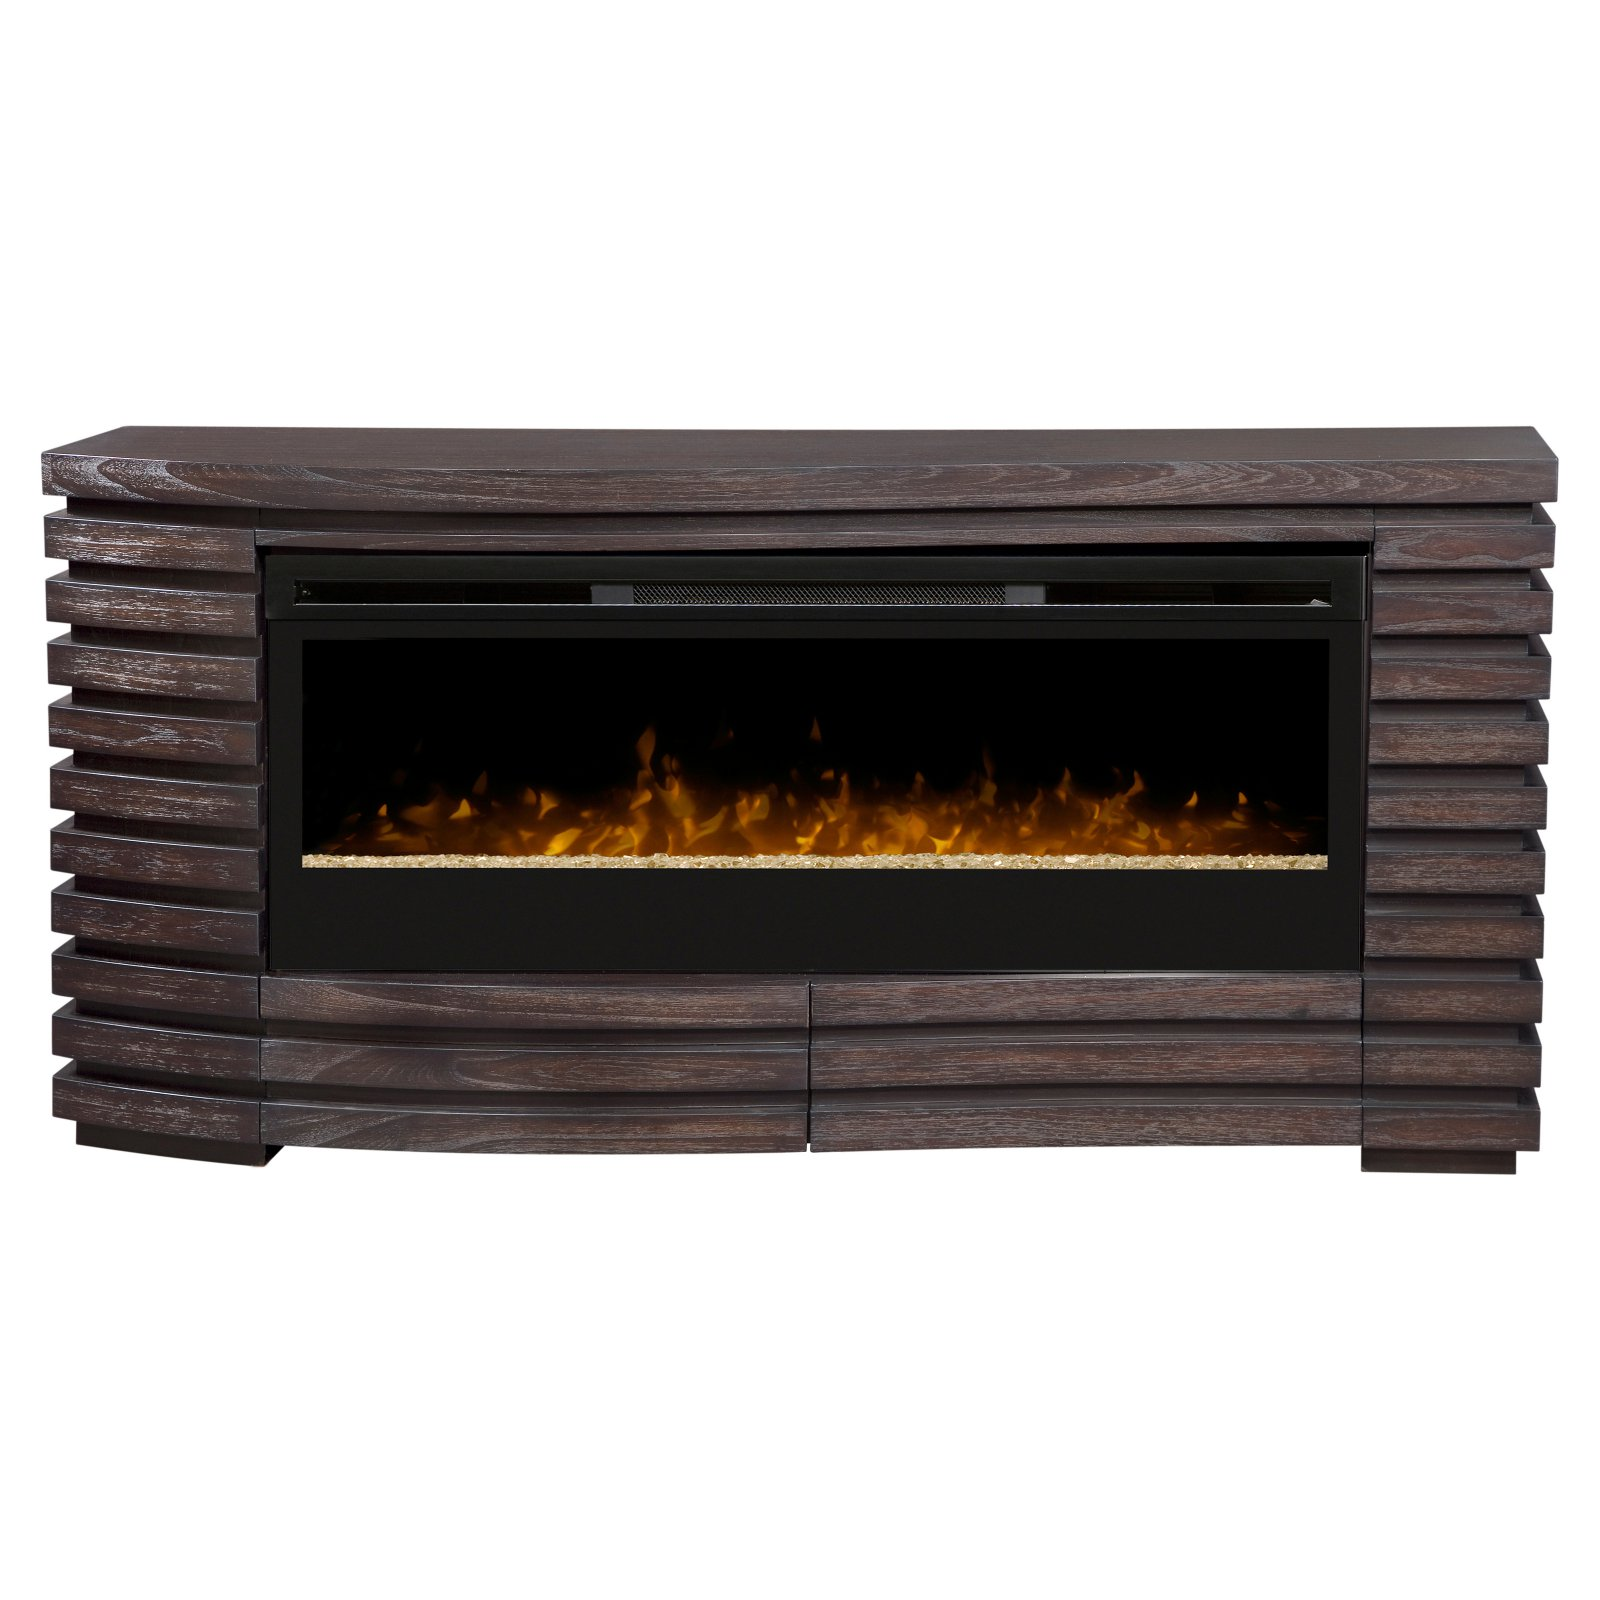 Dimplex elliot mantel fireplace with glass ember bed - Going to bed with embers in fireplace ...